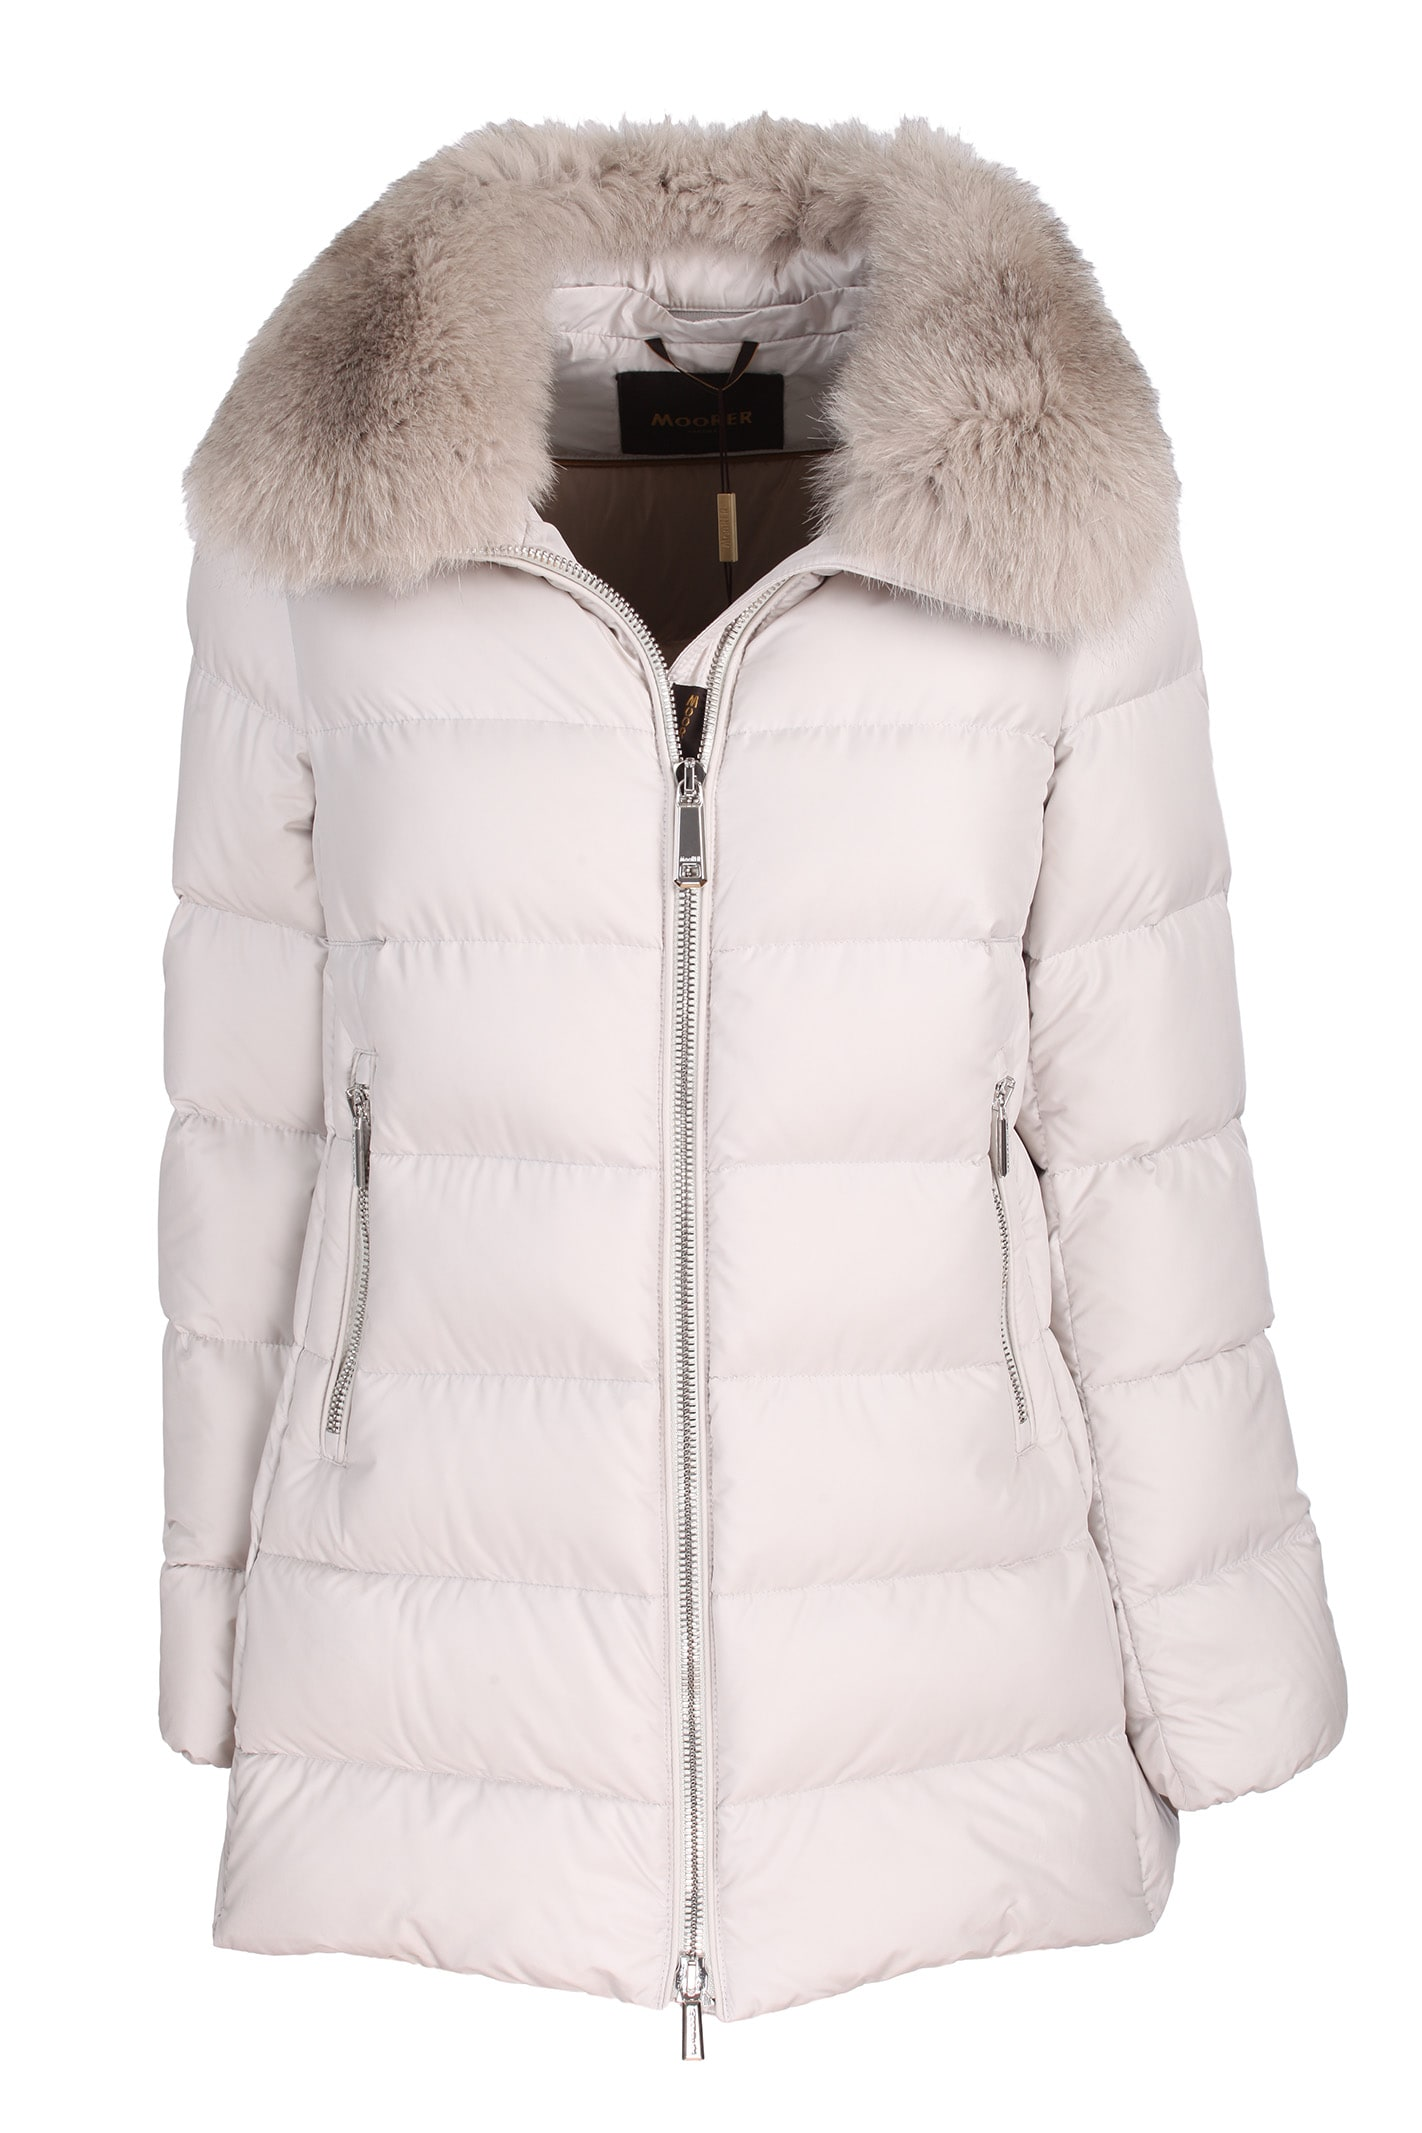 MooRER padded jacket